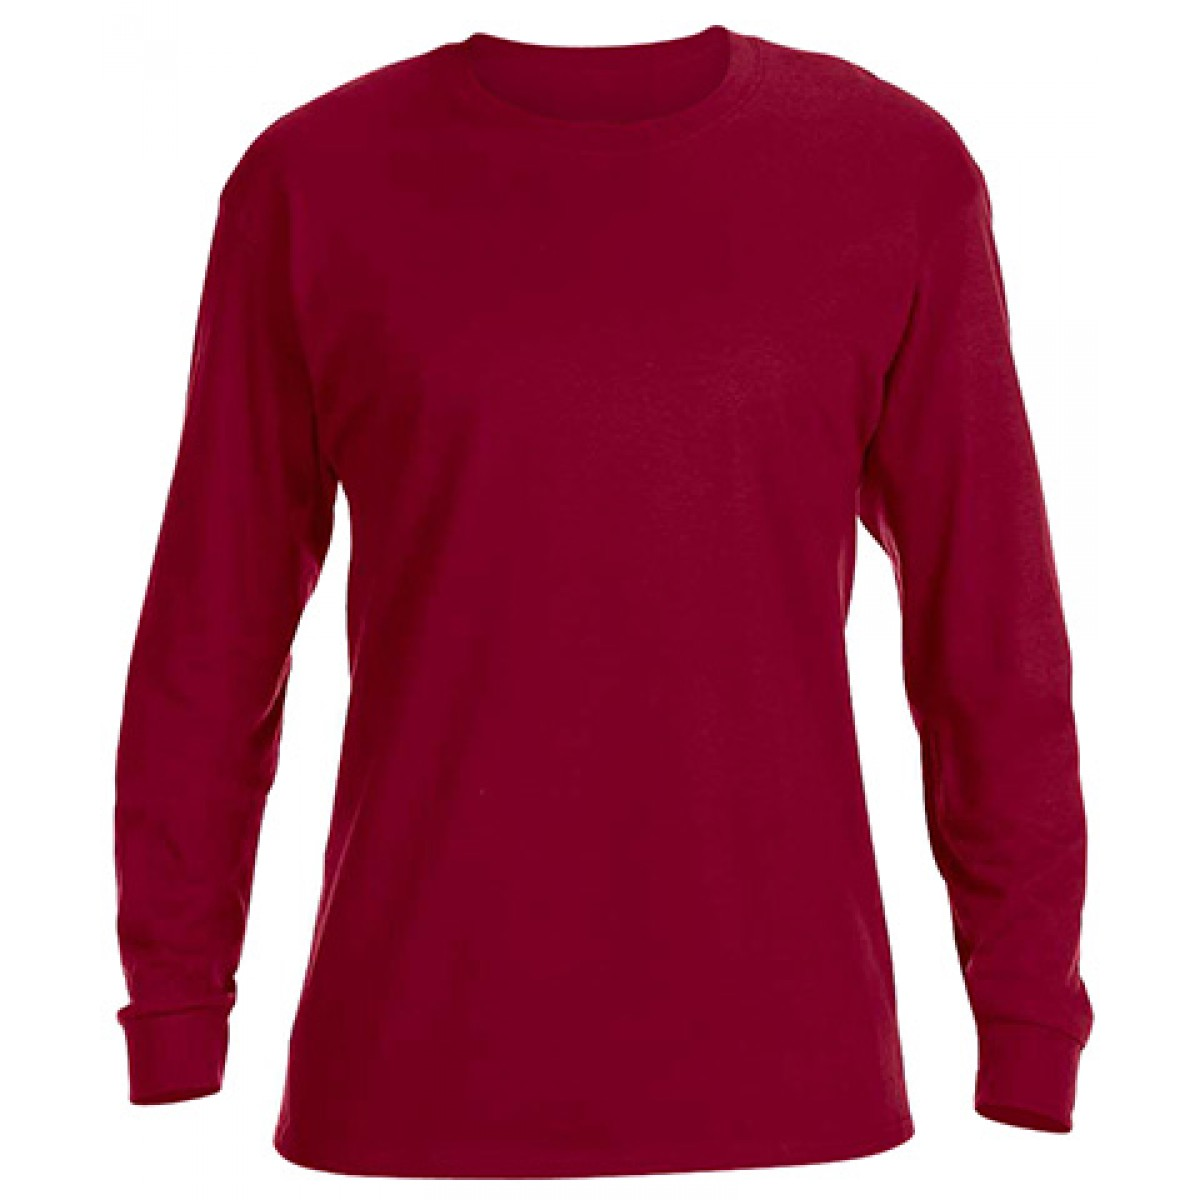 Heavy Cotton Long-Sleeve Adidas Shirt-Red-L